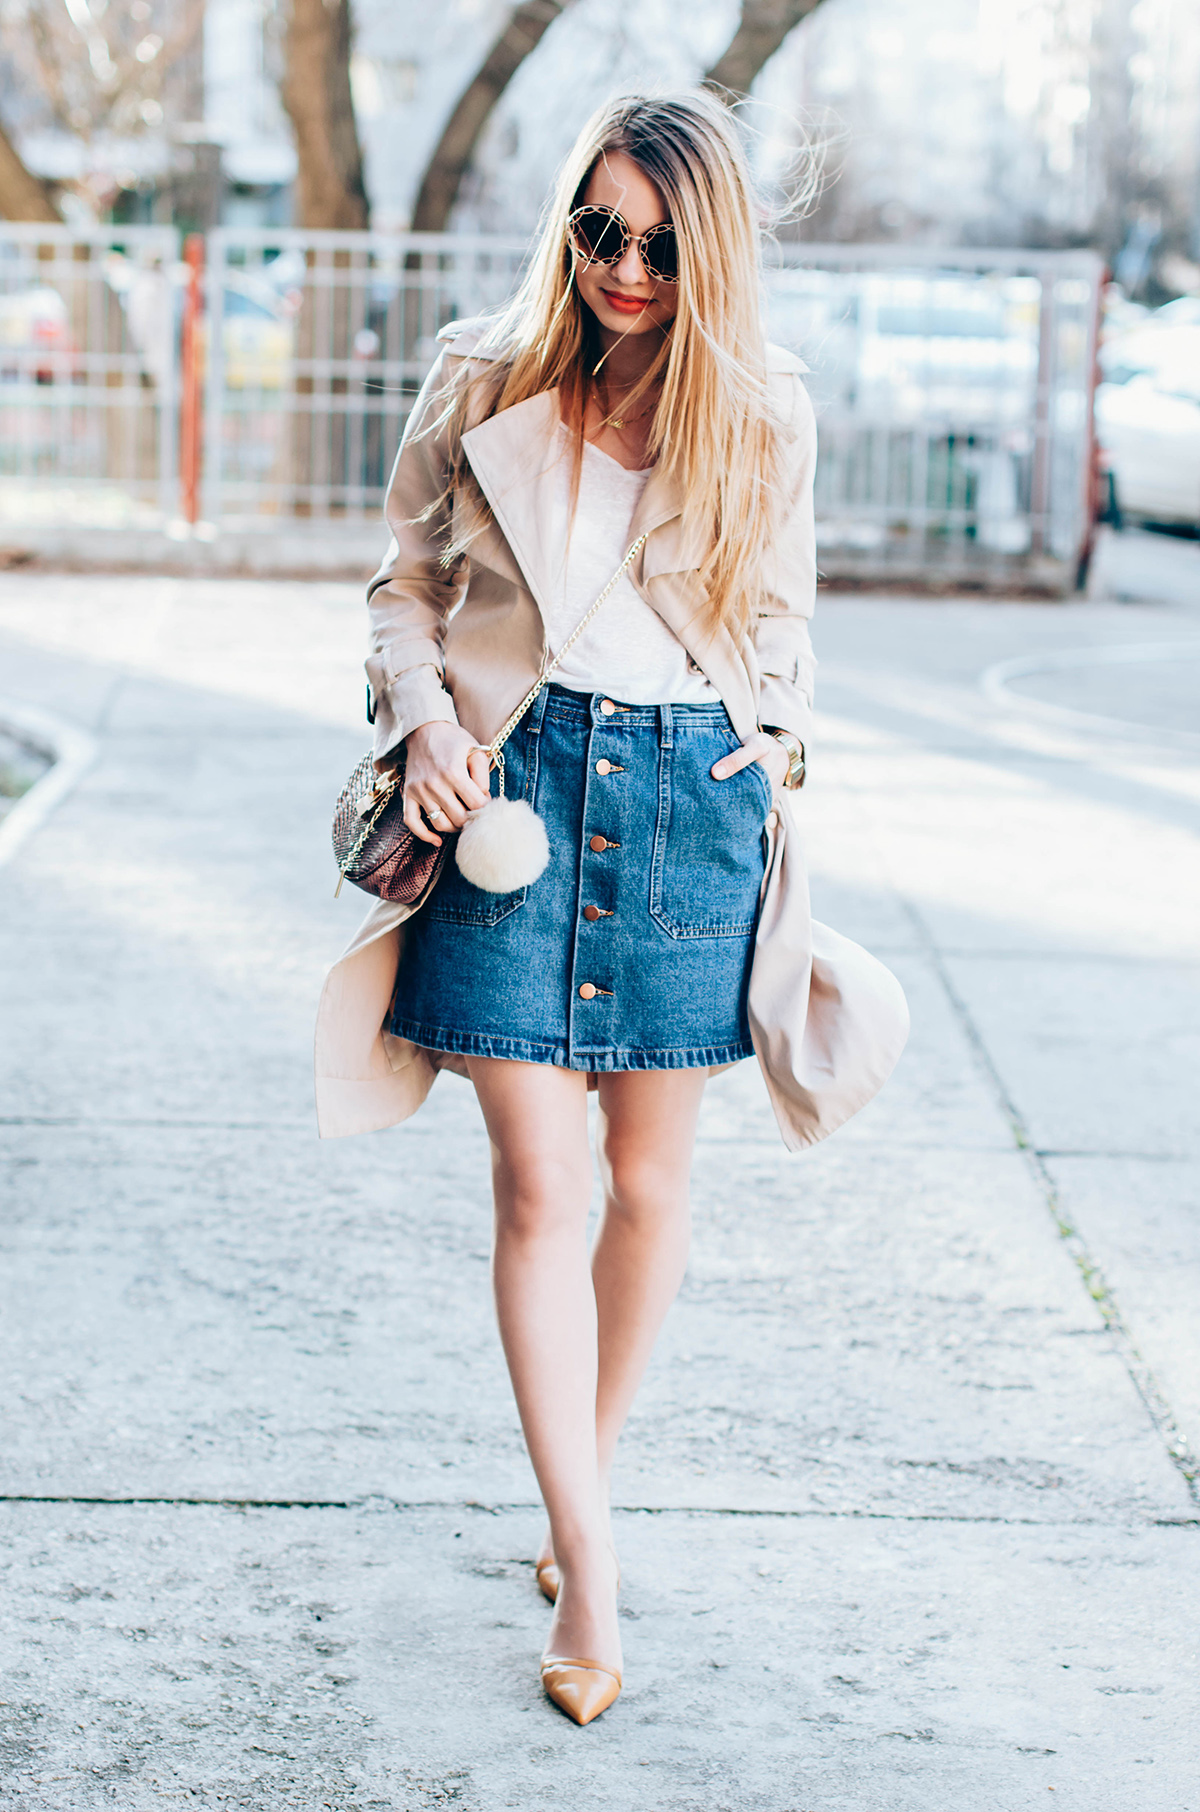 shein-buttoned-denim-skirt-trench-coat-outfit-snake-chloe-bag-fur-pom-pom-outfit (4)